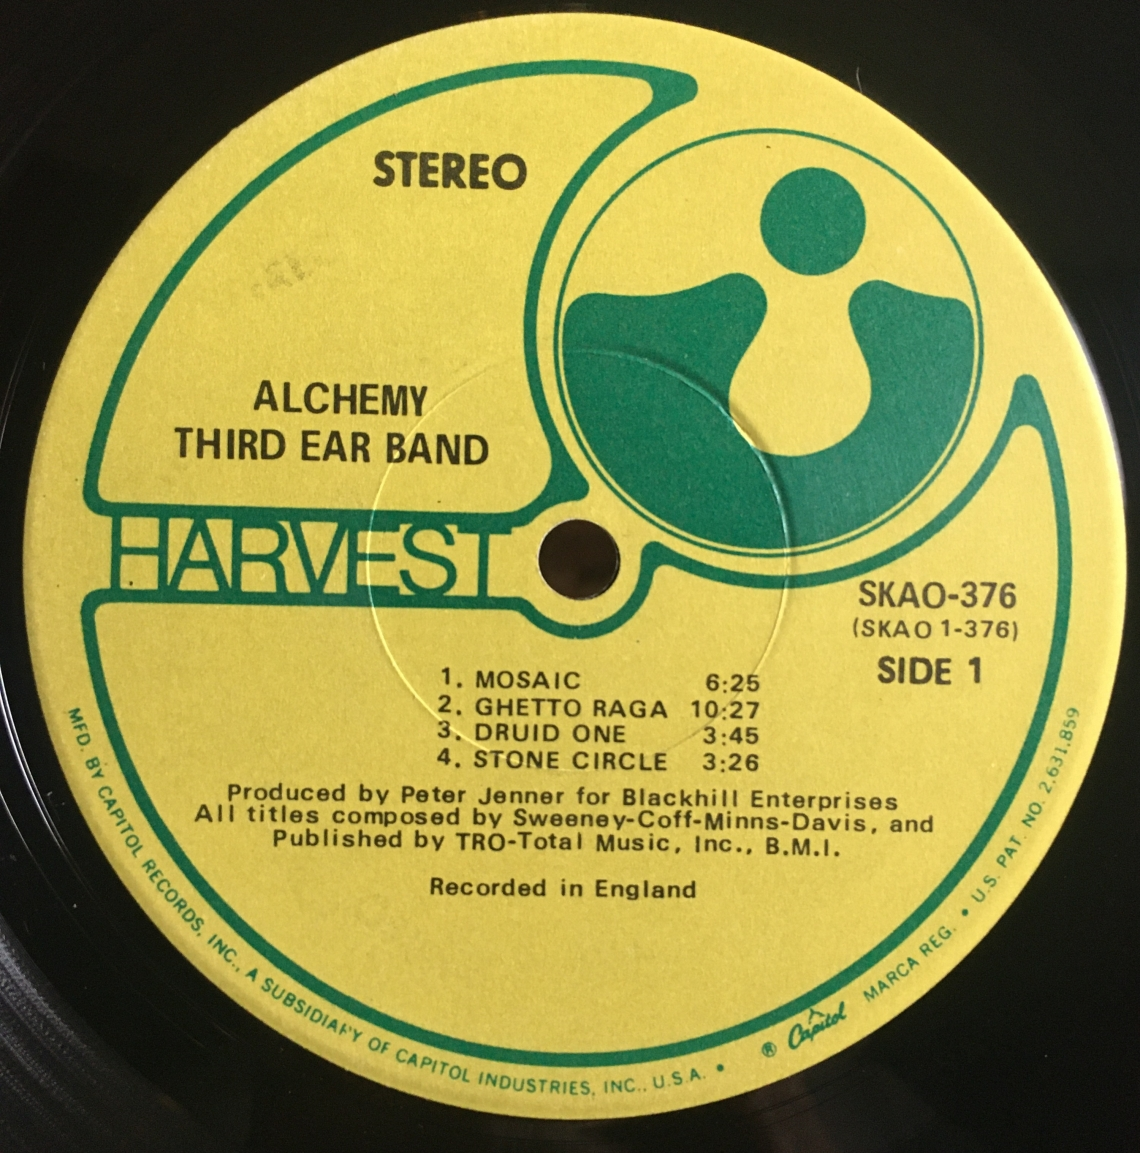 Third Ear Band Alchemy Label